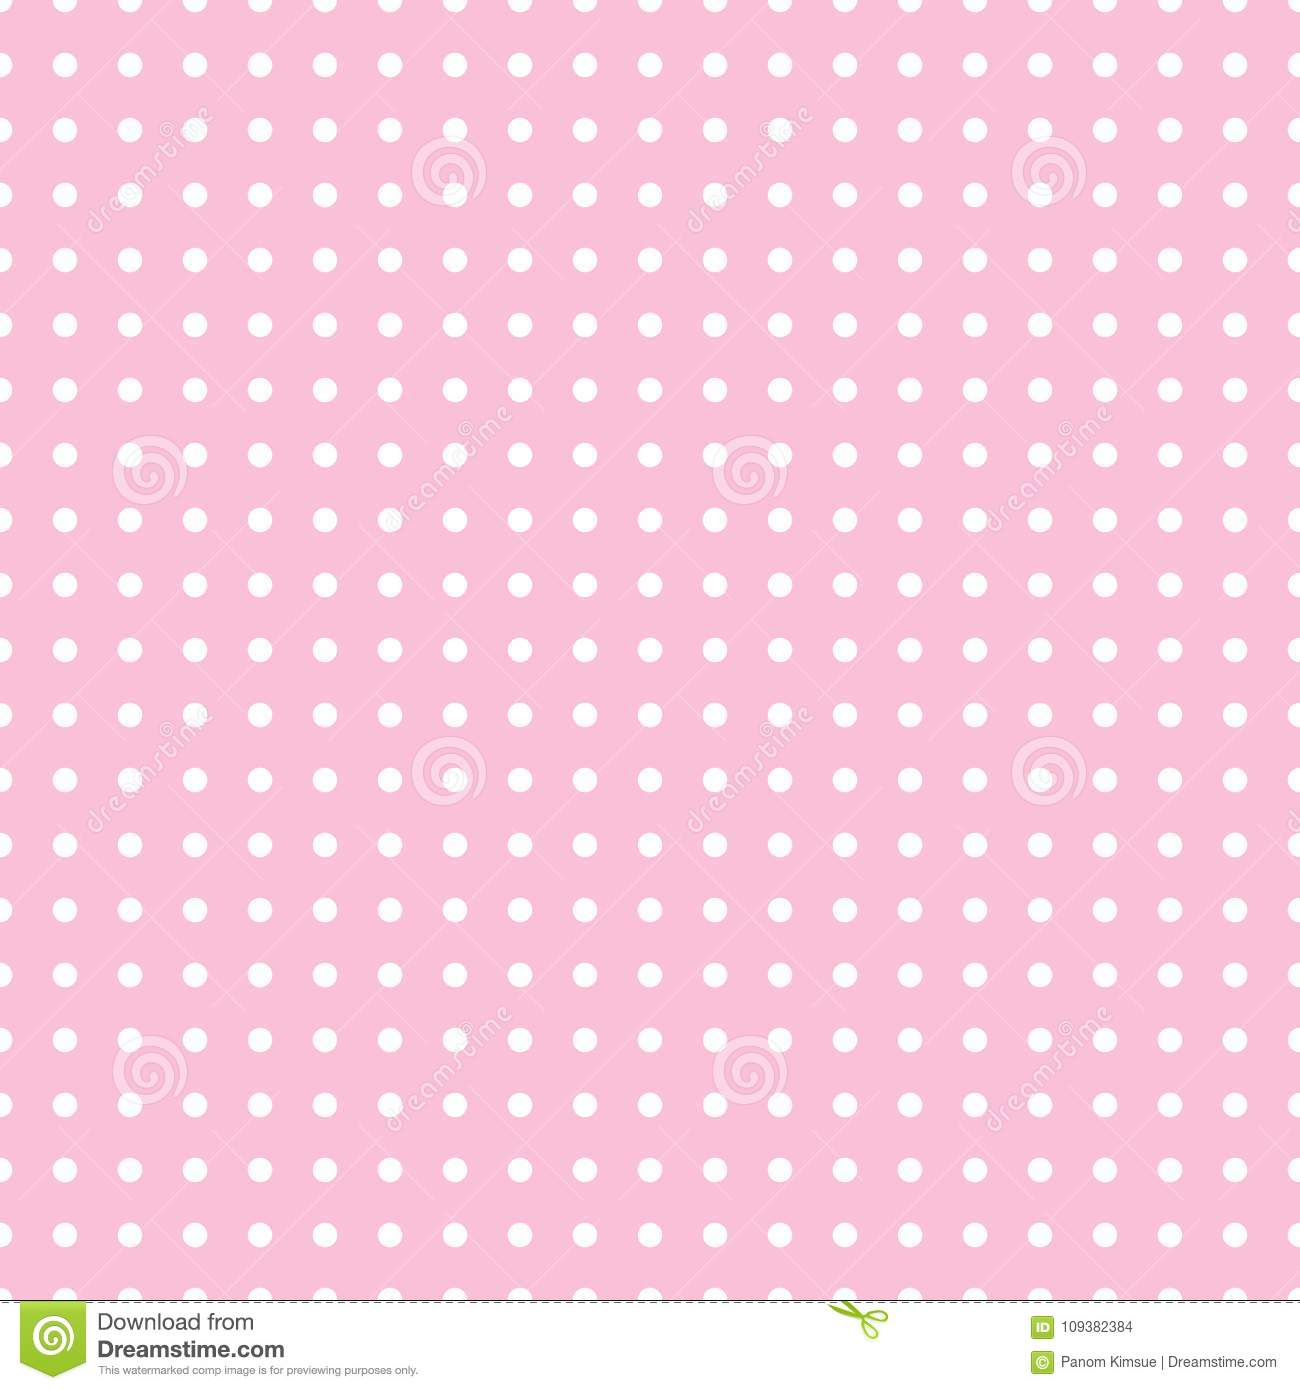 Seamless Pattern Vector With White Polka Dots On Pink Color